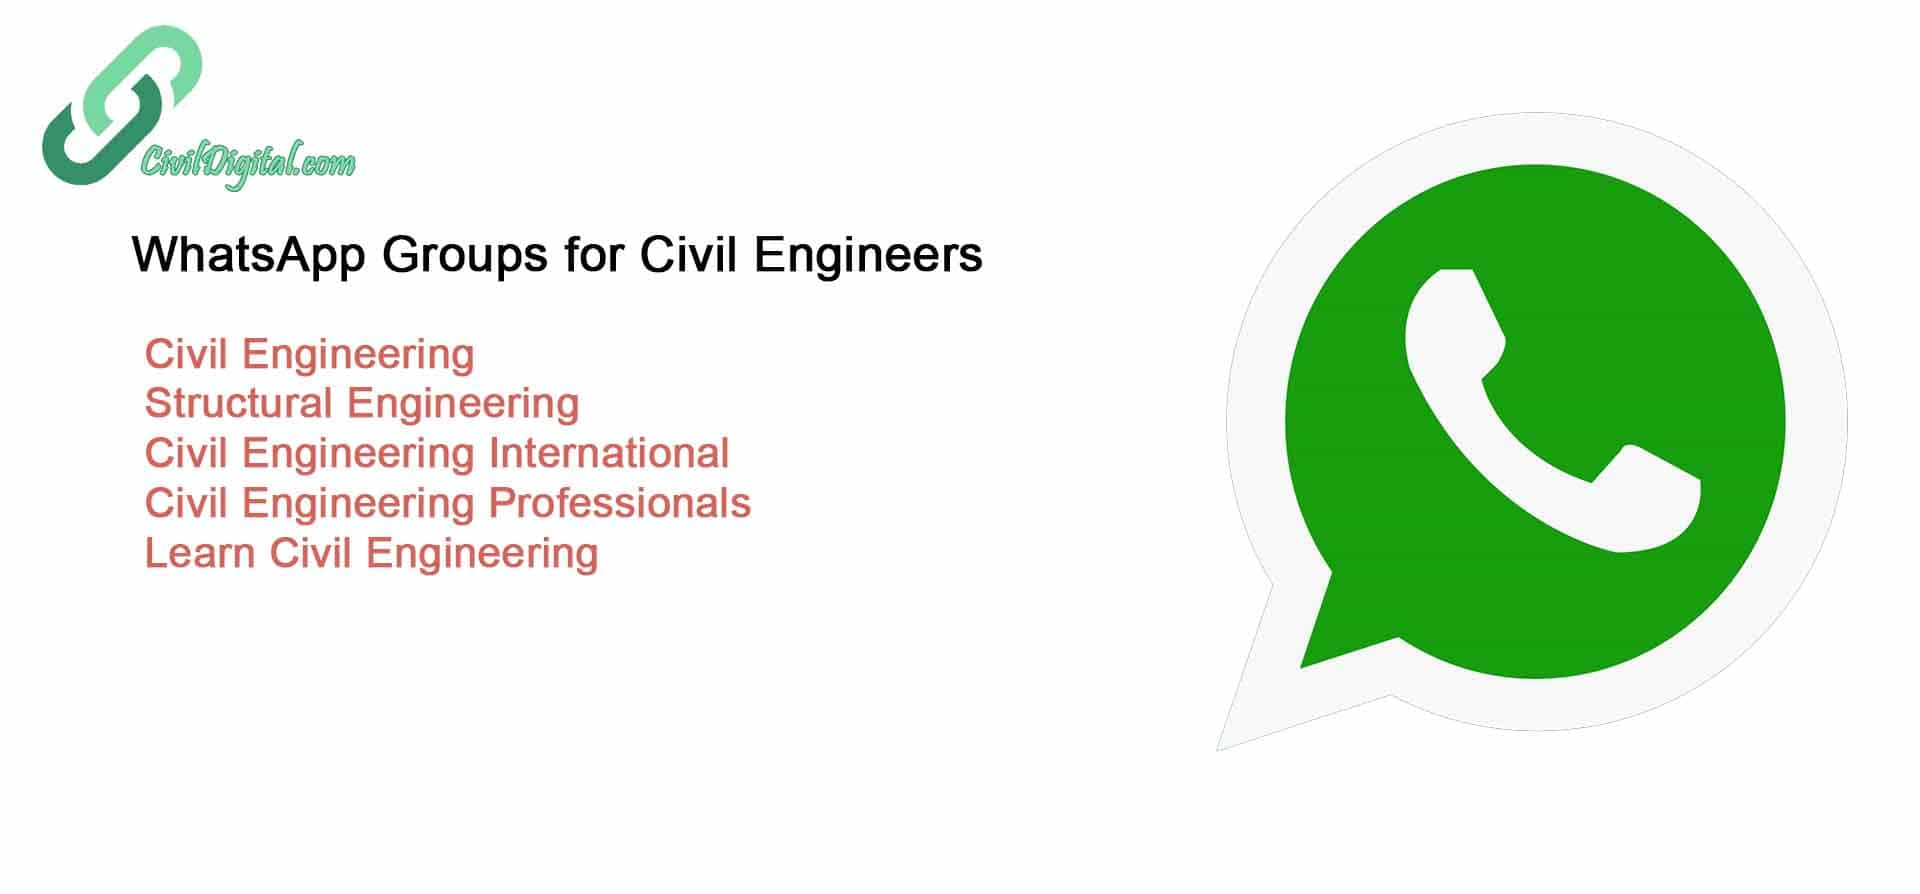 design of reinforced concrete structures quiz and interview civil engineering whatsapp group